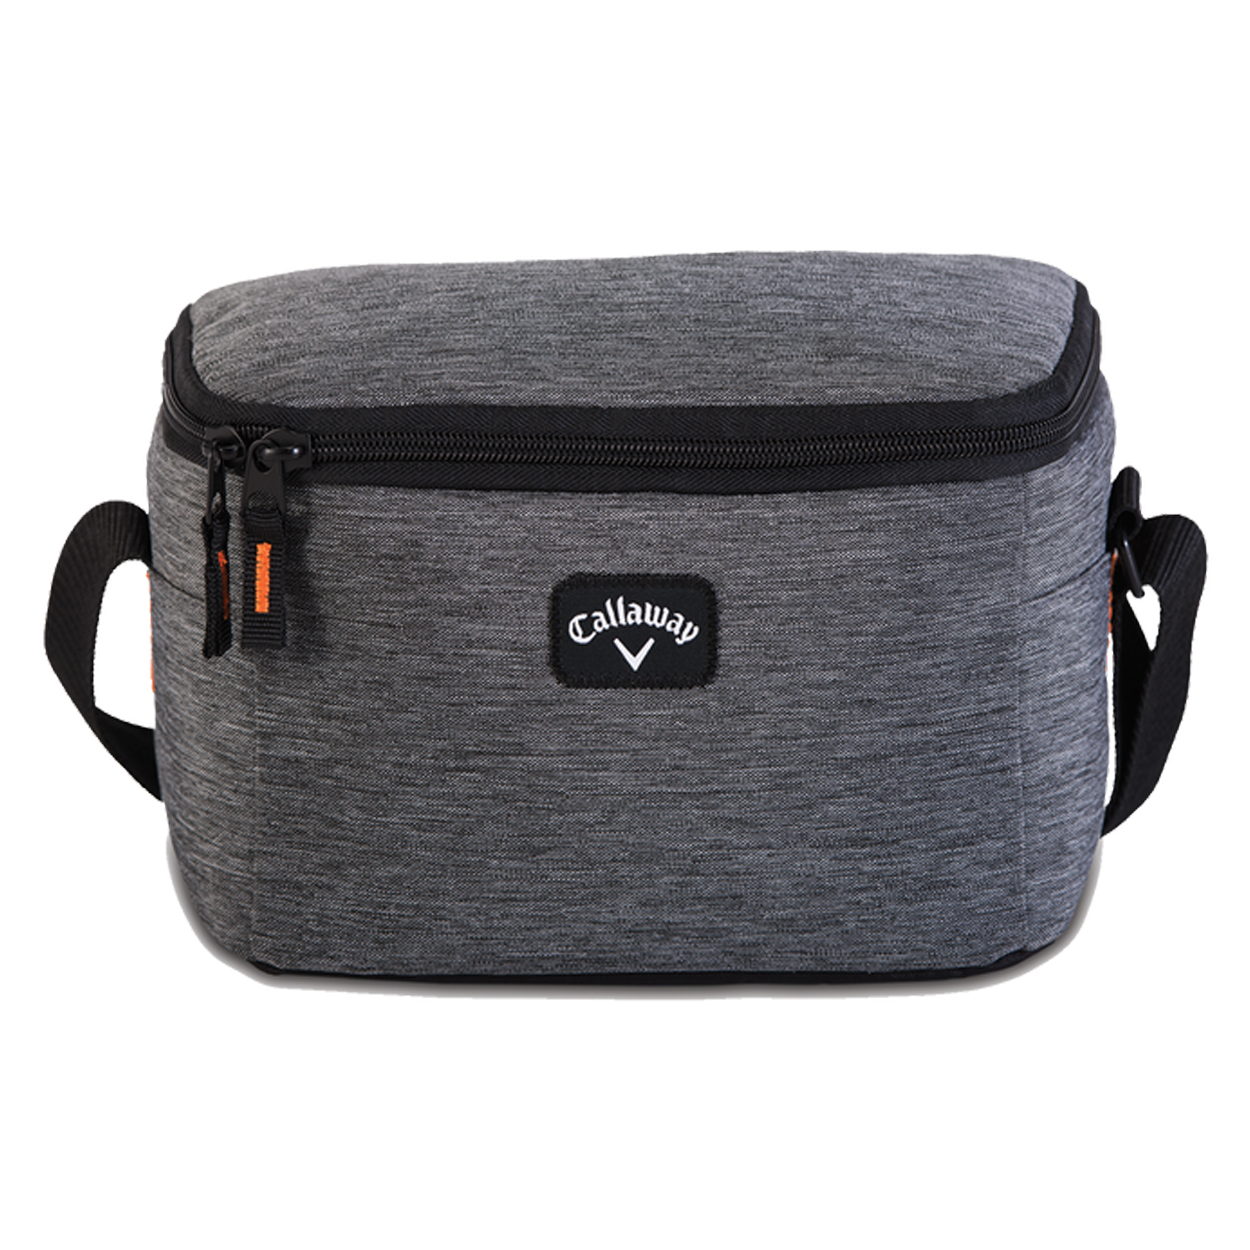 Callaway Clubhouse Collection Mini Cooler - GolfEtail.com abffad5a83071